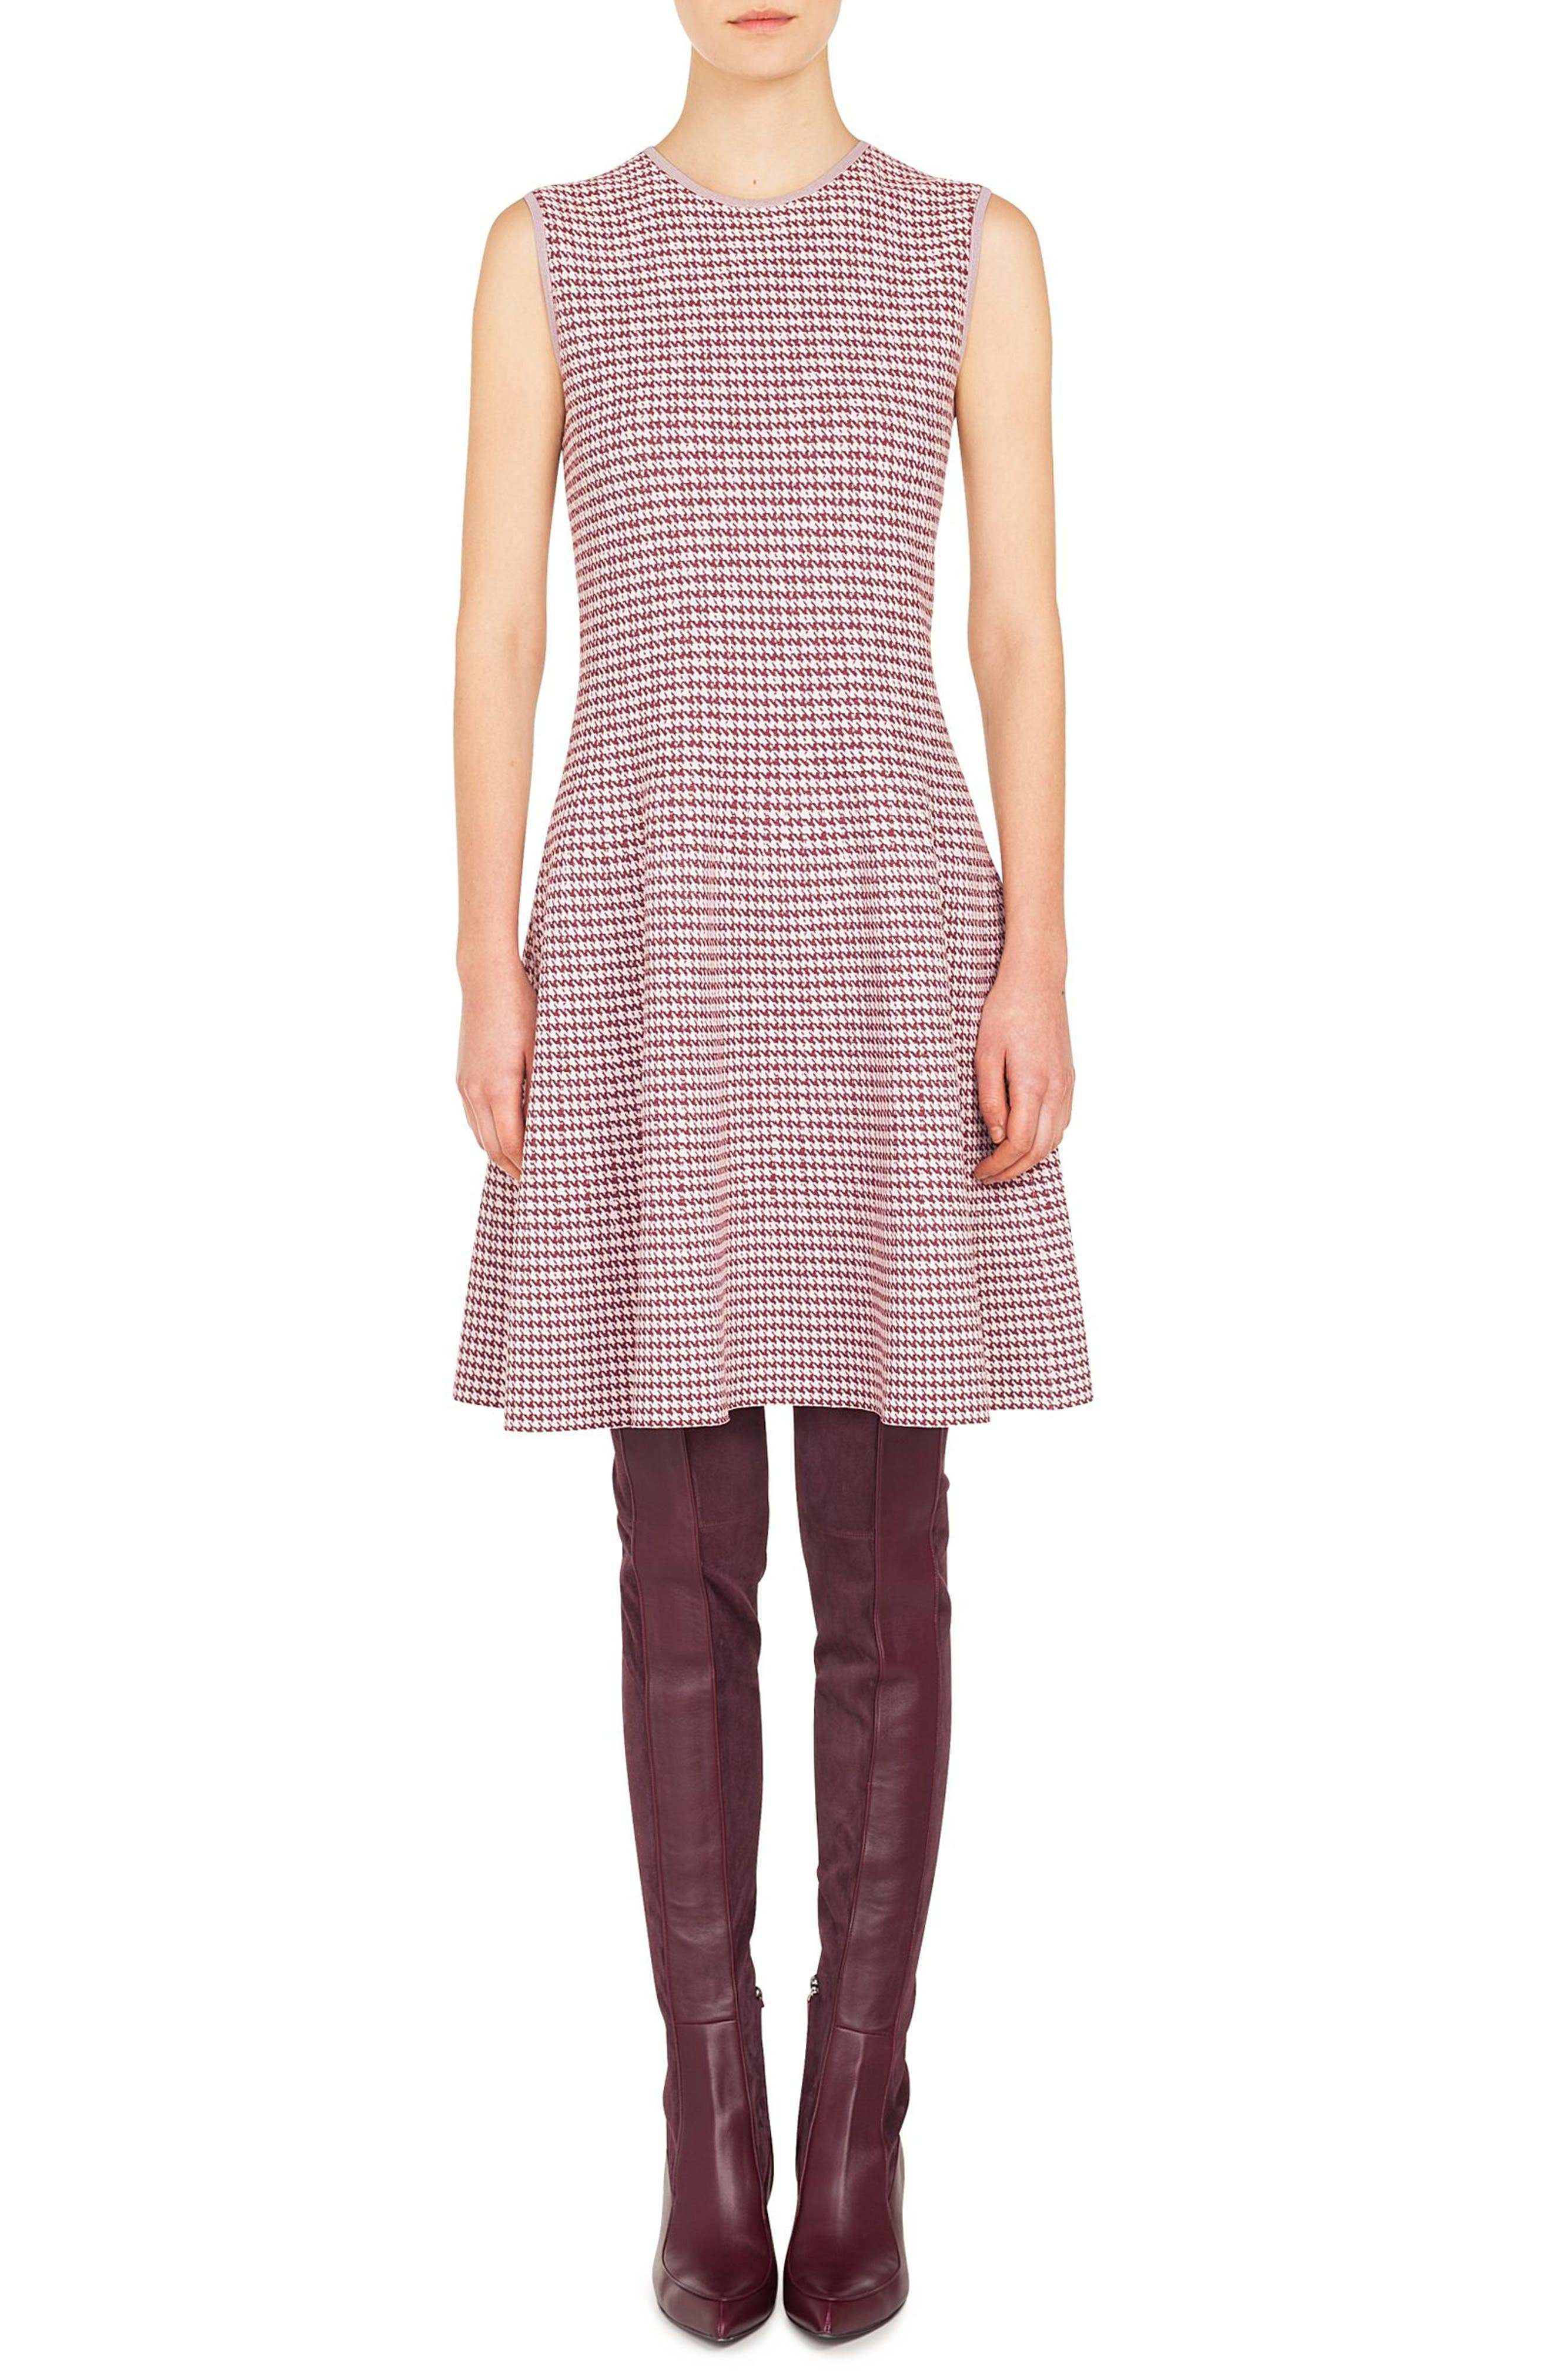 AKRIS PUNTO Round-Neck Sleeveless Fit-And-Flare Houndstooth Knit Dress in Blush Rose/ Burgundy